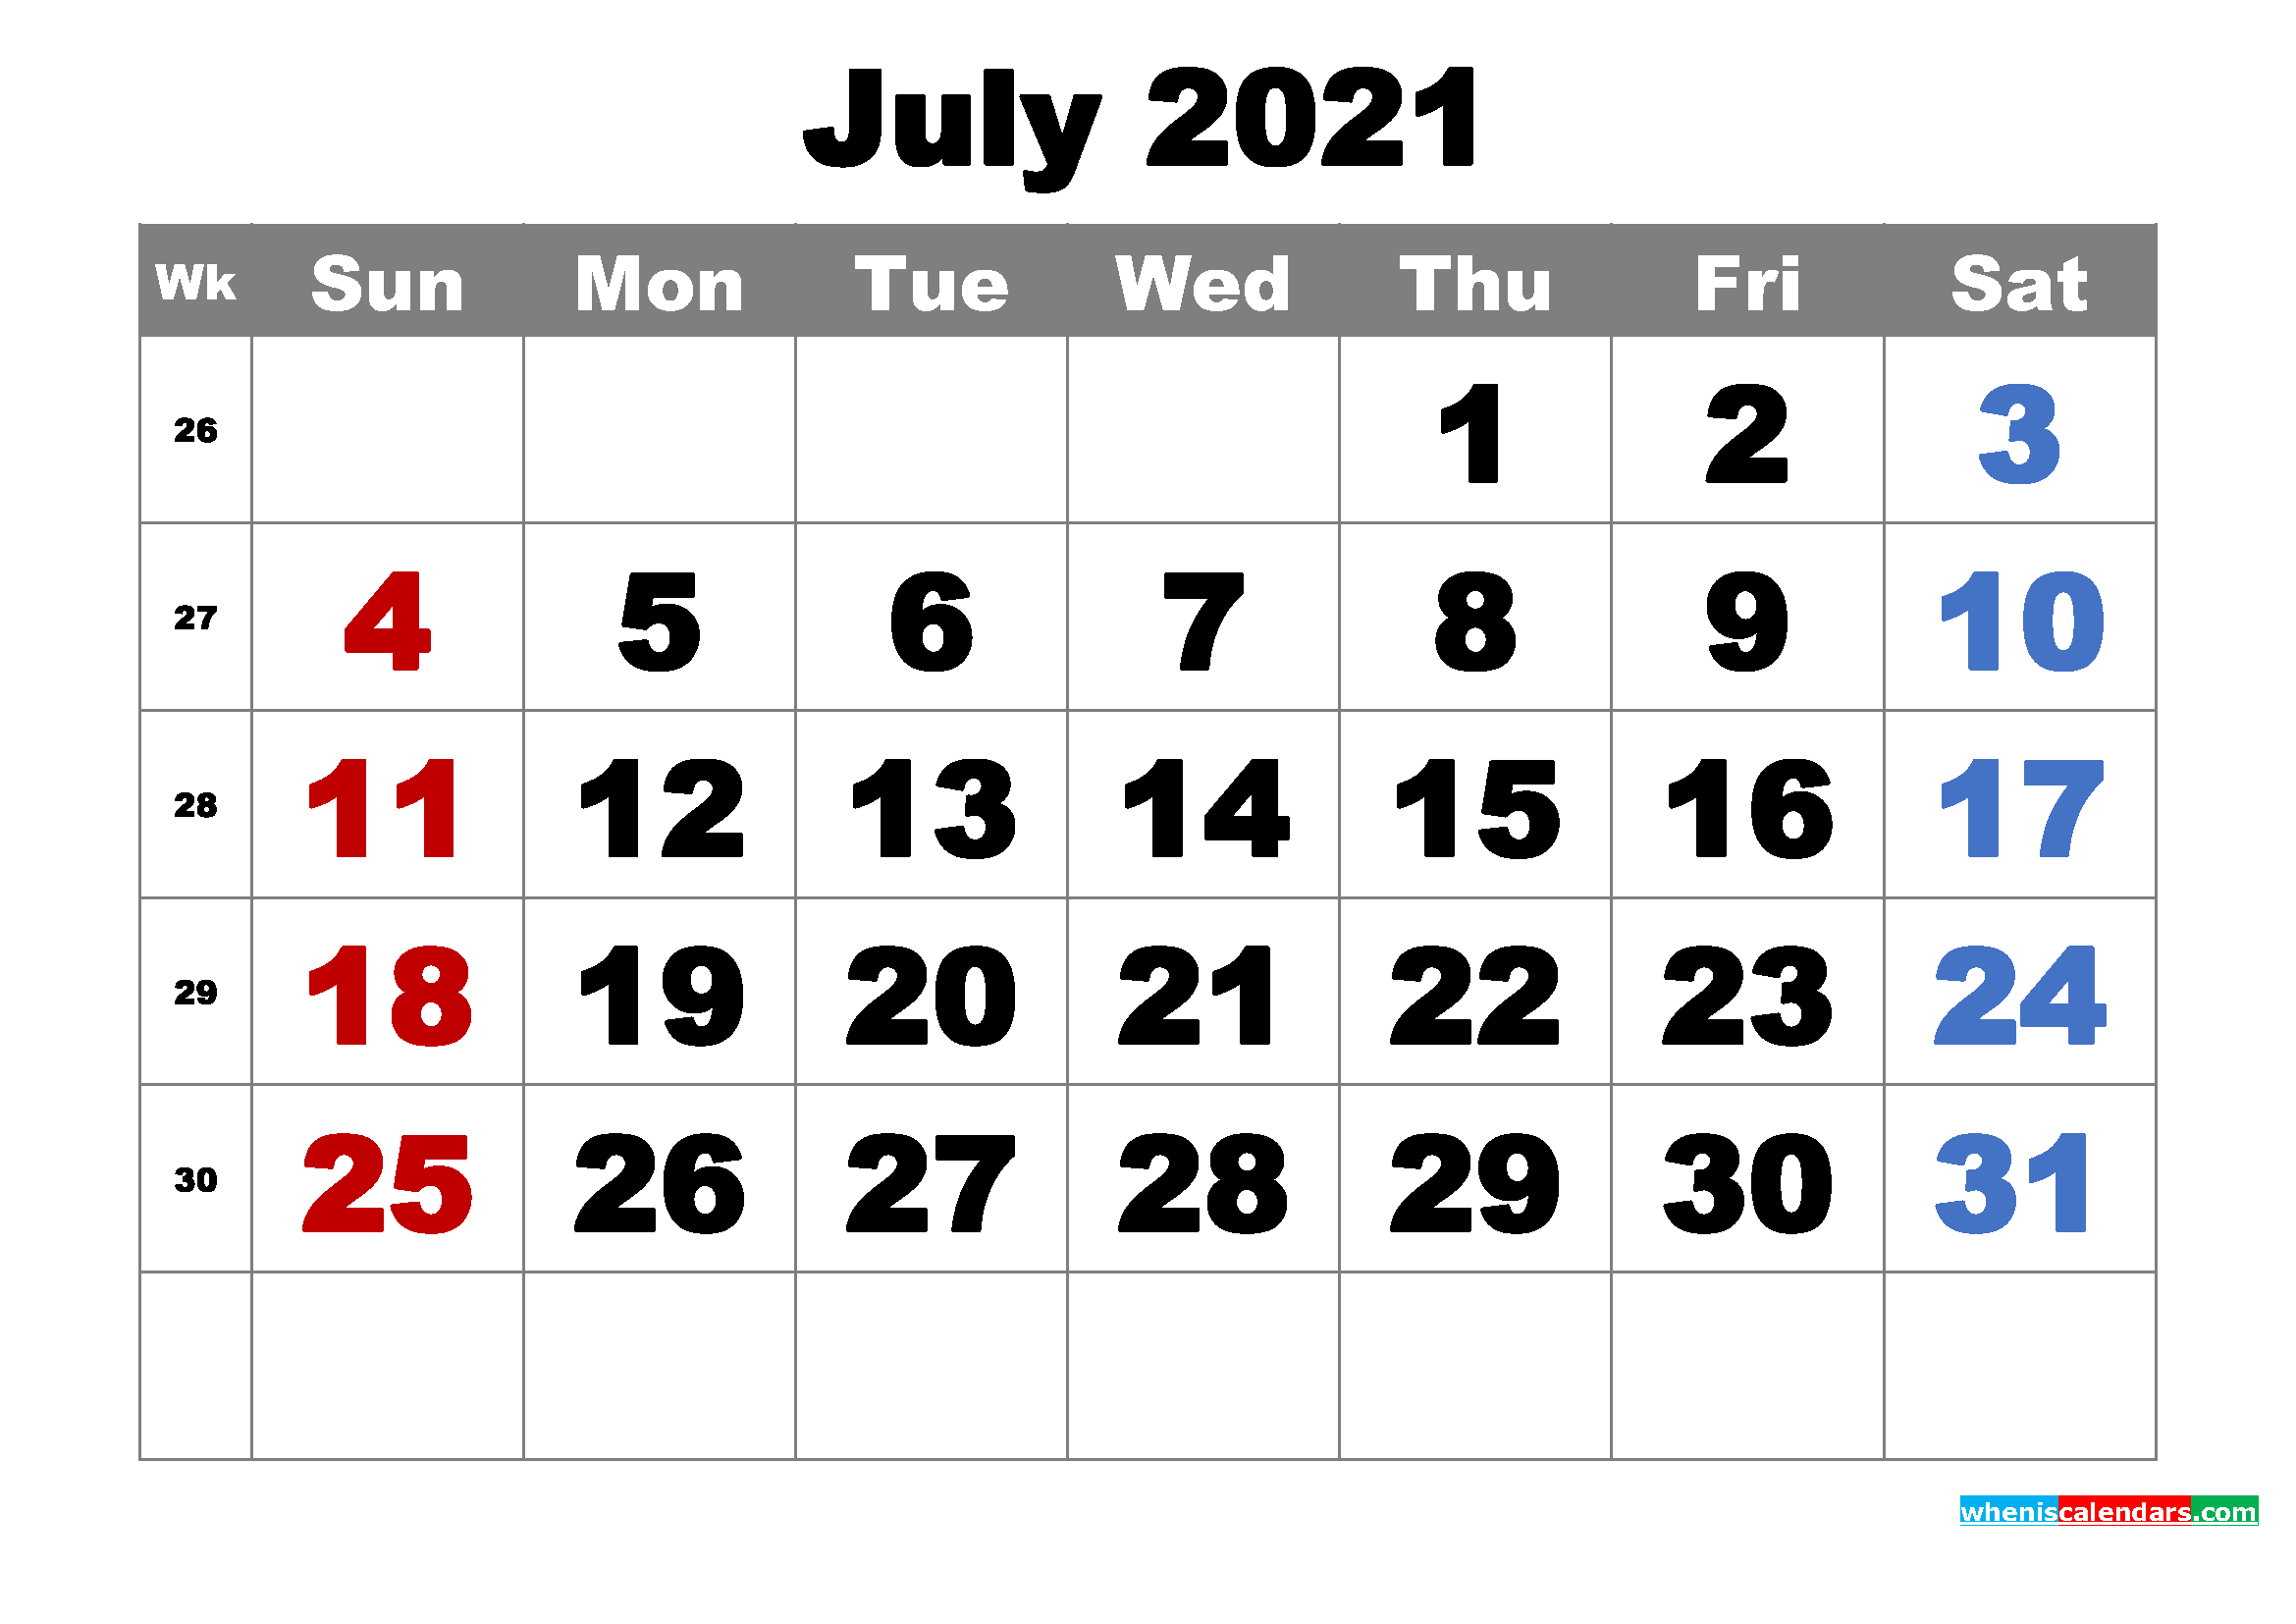 July 2021 Calendar Word Free Printable July 2021 Calendar Word, PDF, Image